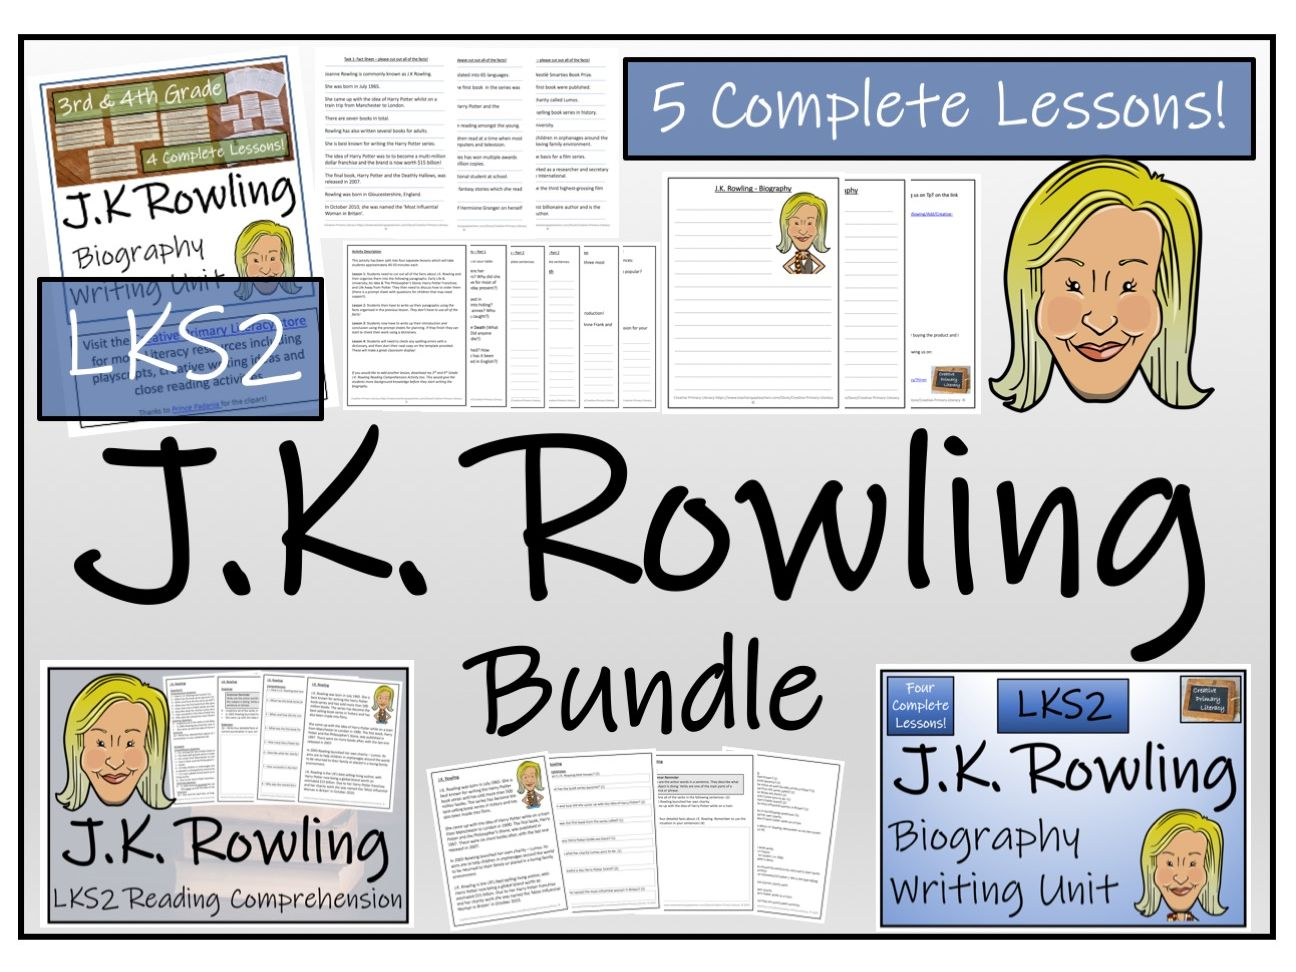 LKS2 Literacy - J.K. Rowling Reading Comprehension & Biography Bundle